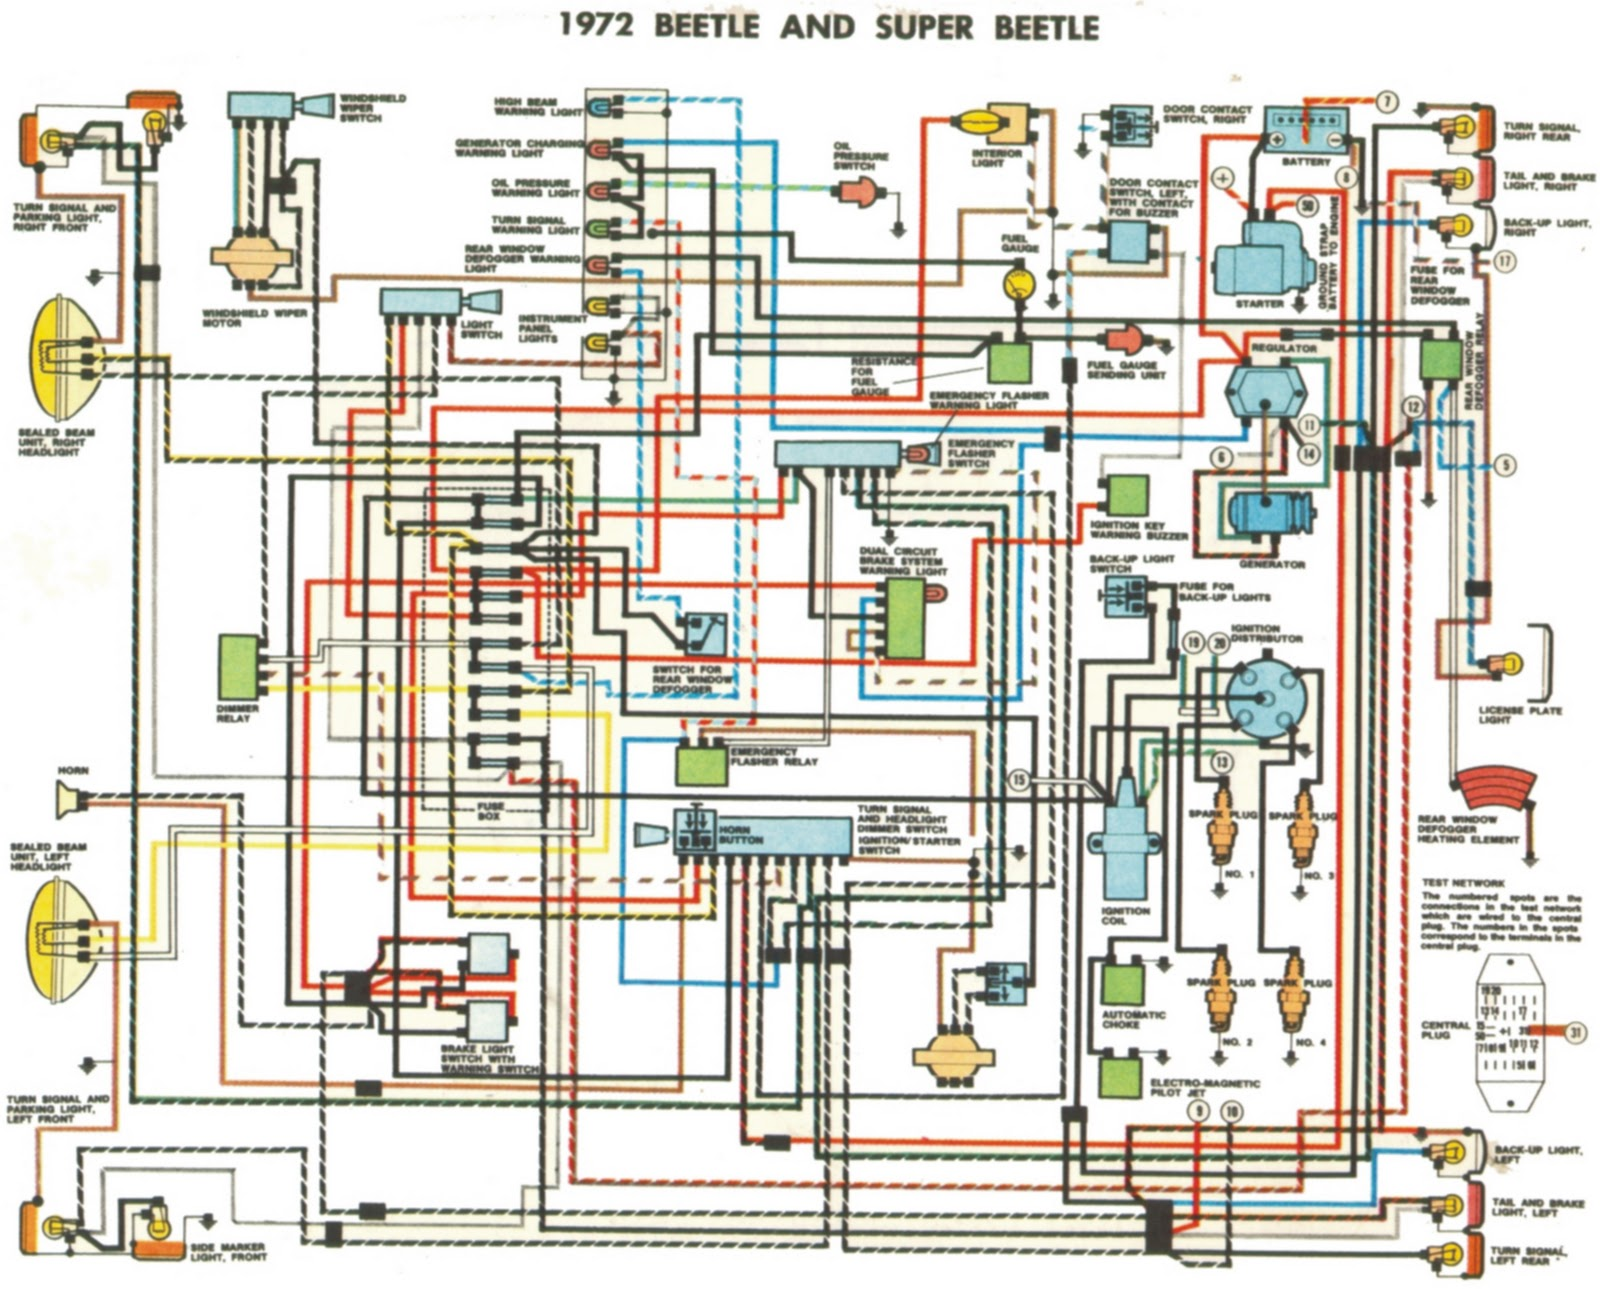 super beetle wiring diagram 3 way insurance for 1973 vw all data volkswagen best library 1972